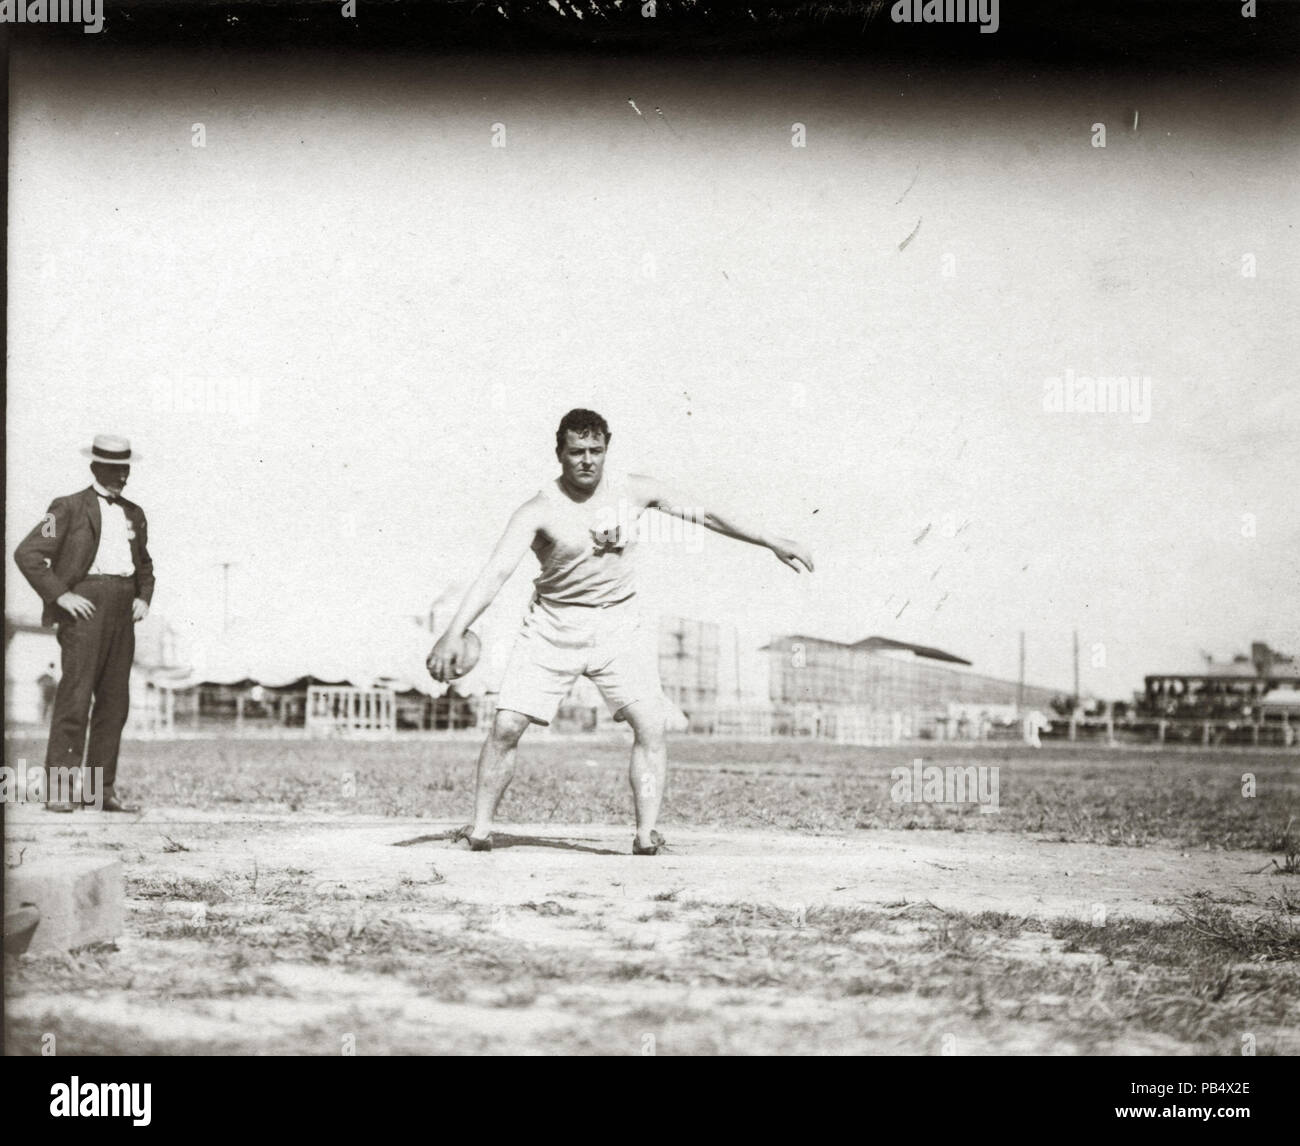 837 John Flannigan of the Greater New York Irish Athletic Association throwing a discus at the 1904 Olympics - Stock Image